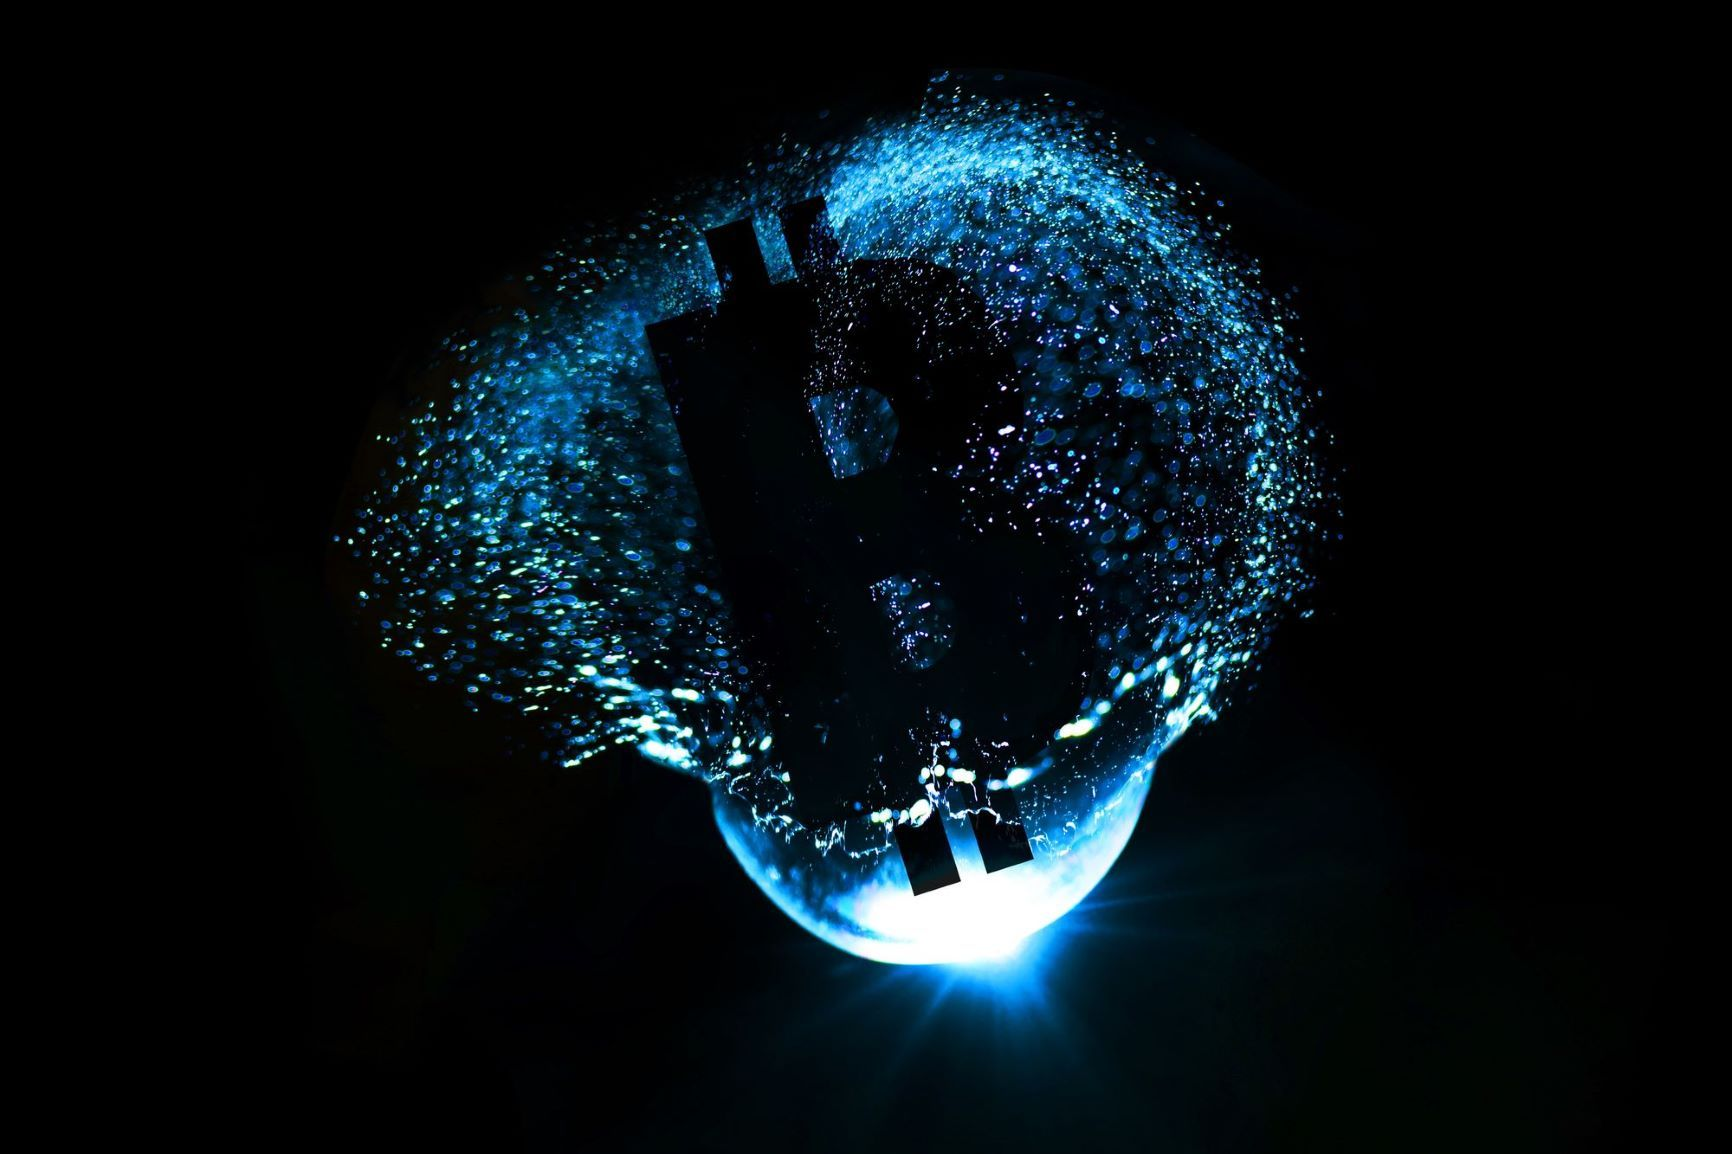 The Evolution of Bitcoin - 12 Years in the Making